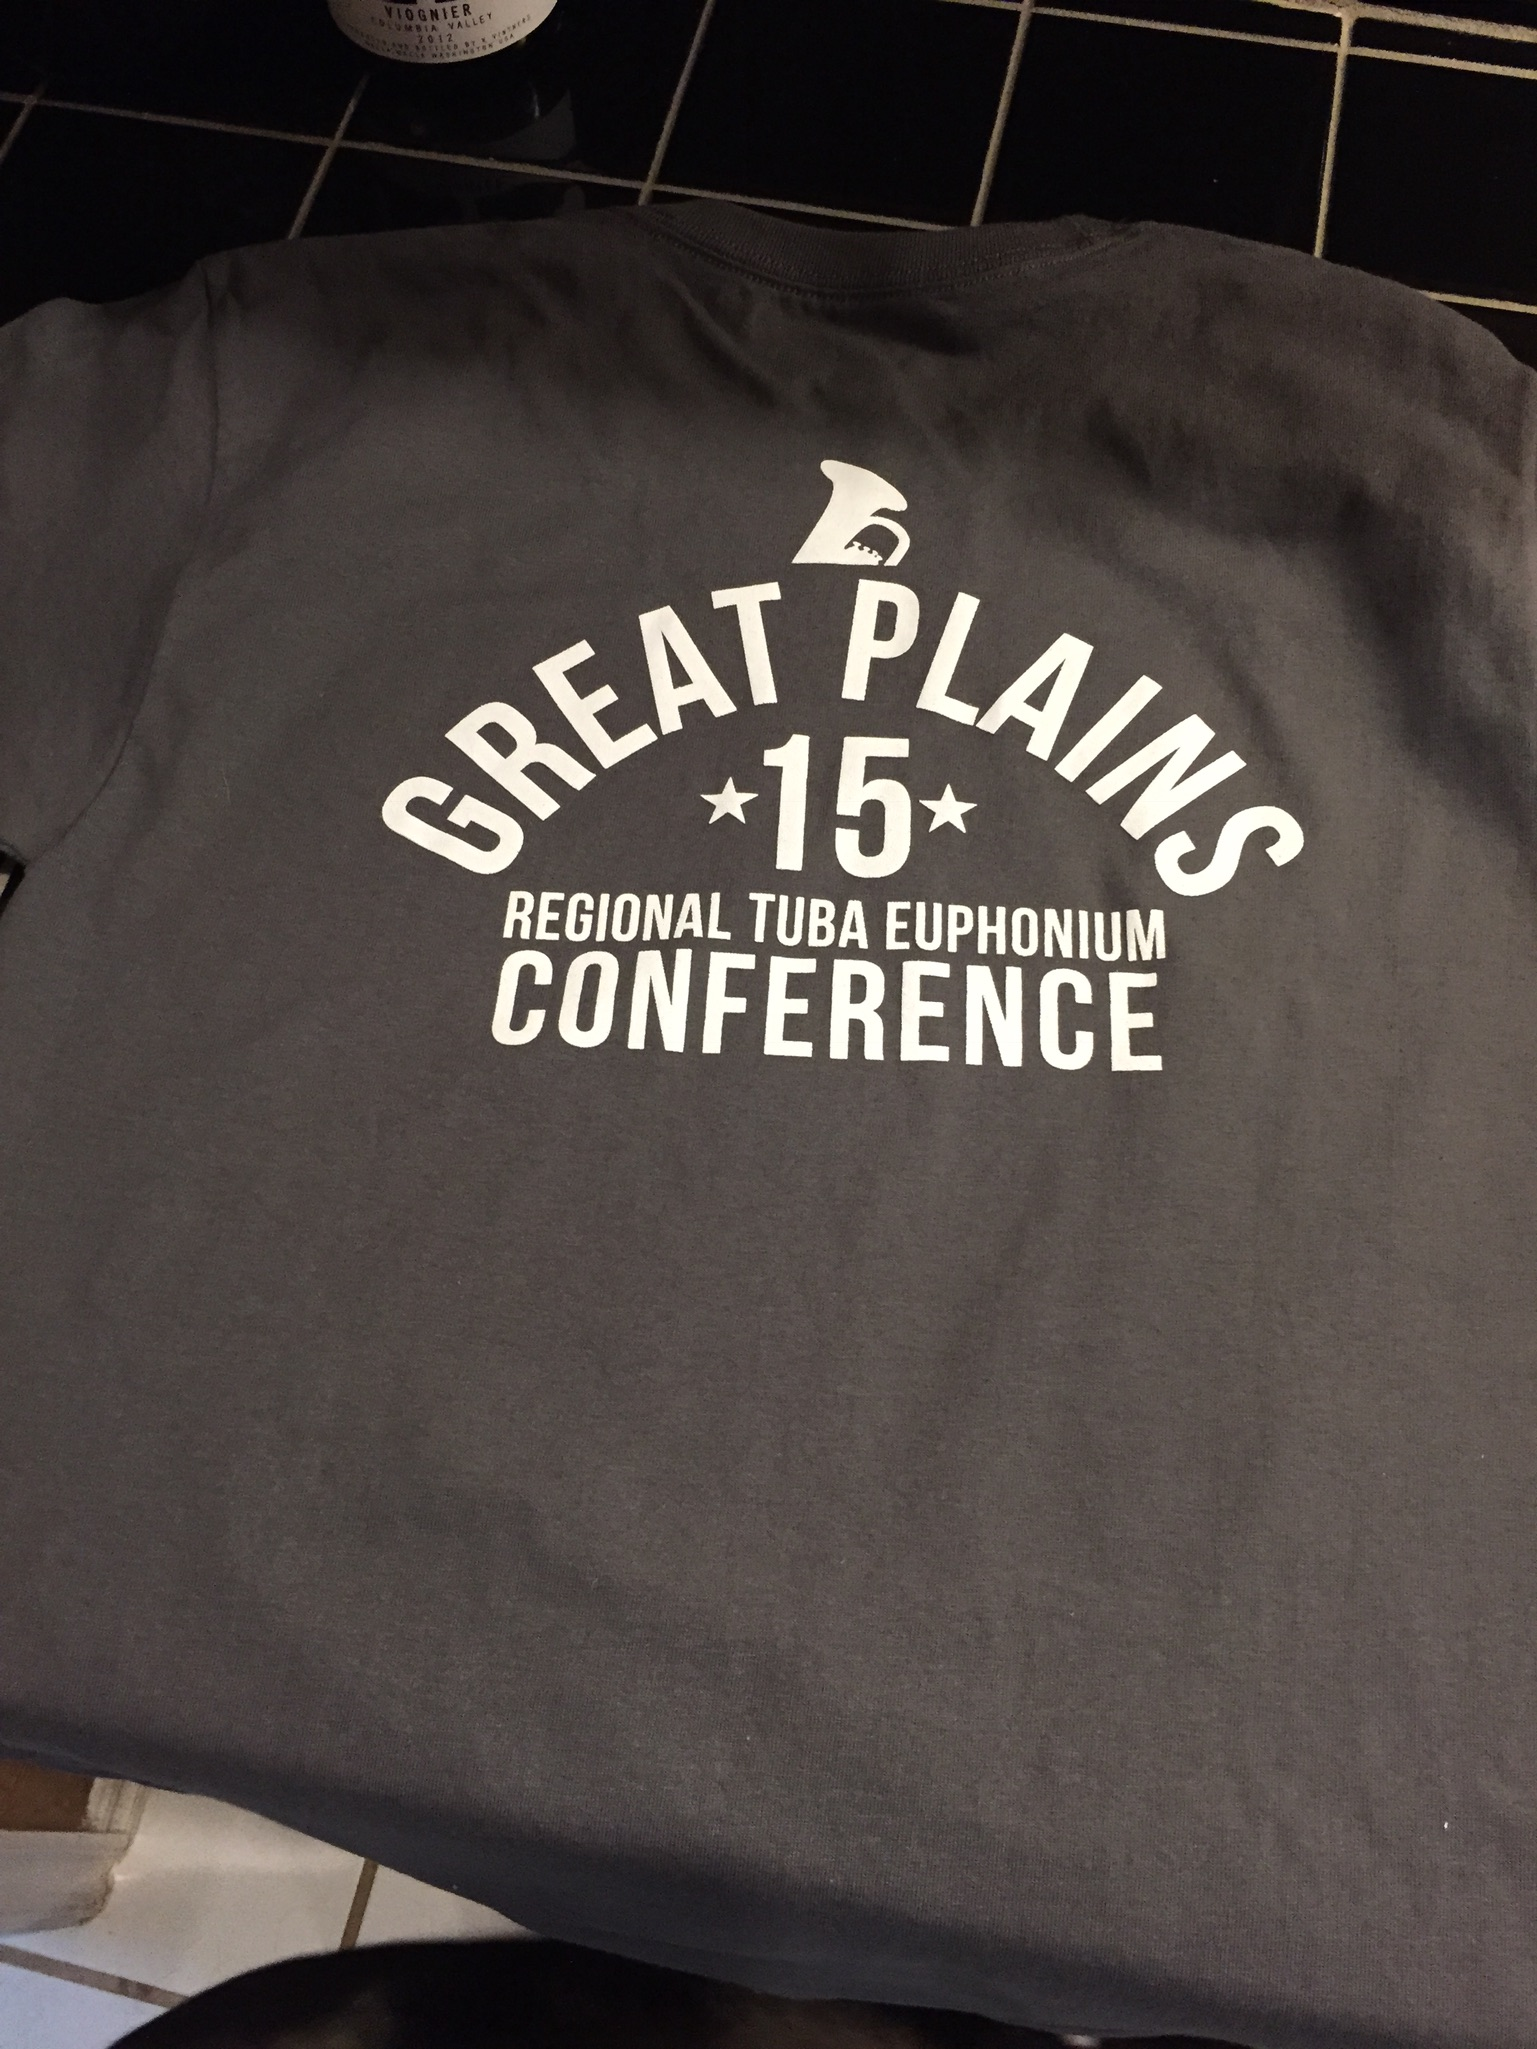 Studio shirts for the conference.